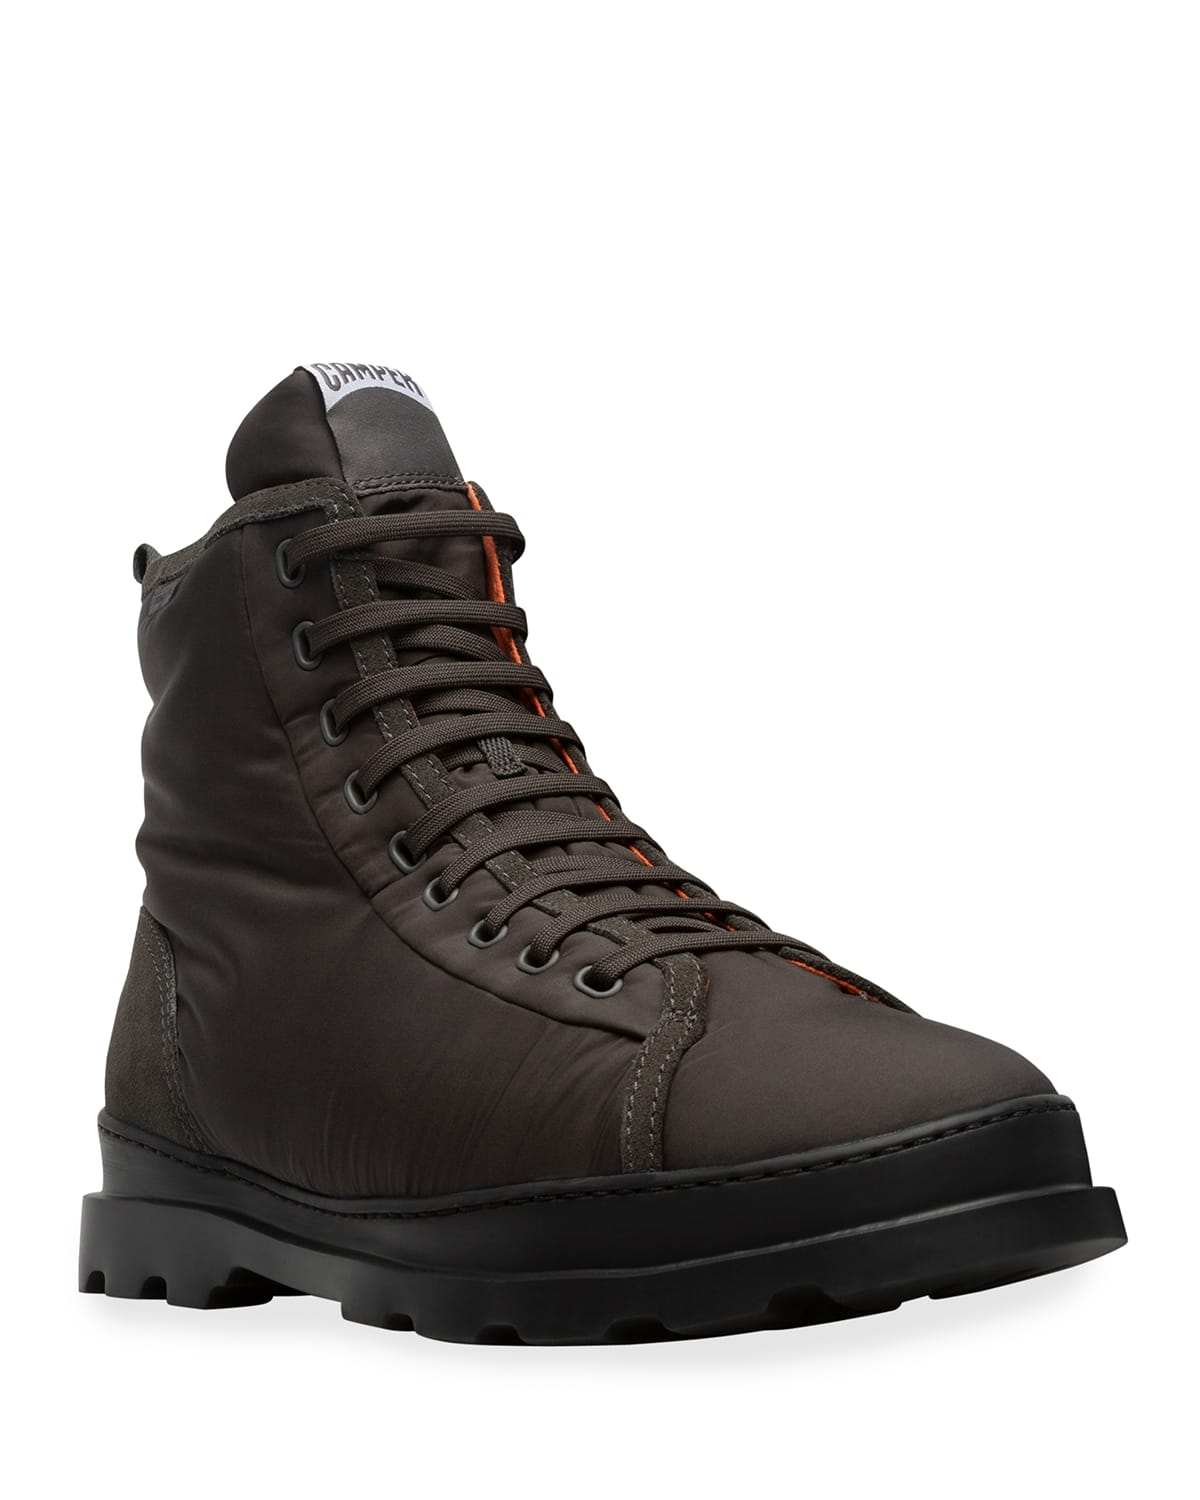 Men's Brutus Recycled Fabric %26 Suede Lace-Up Boots